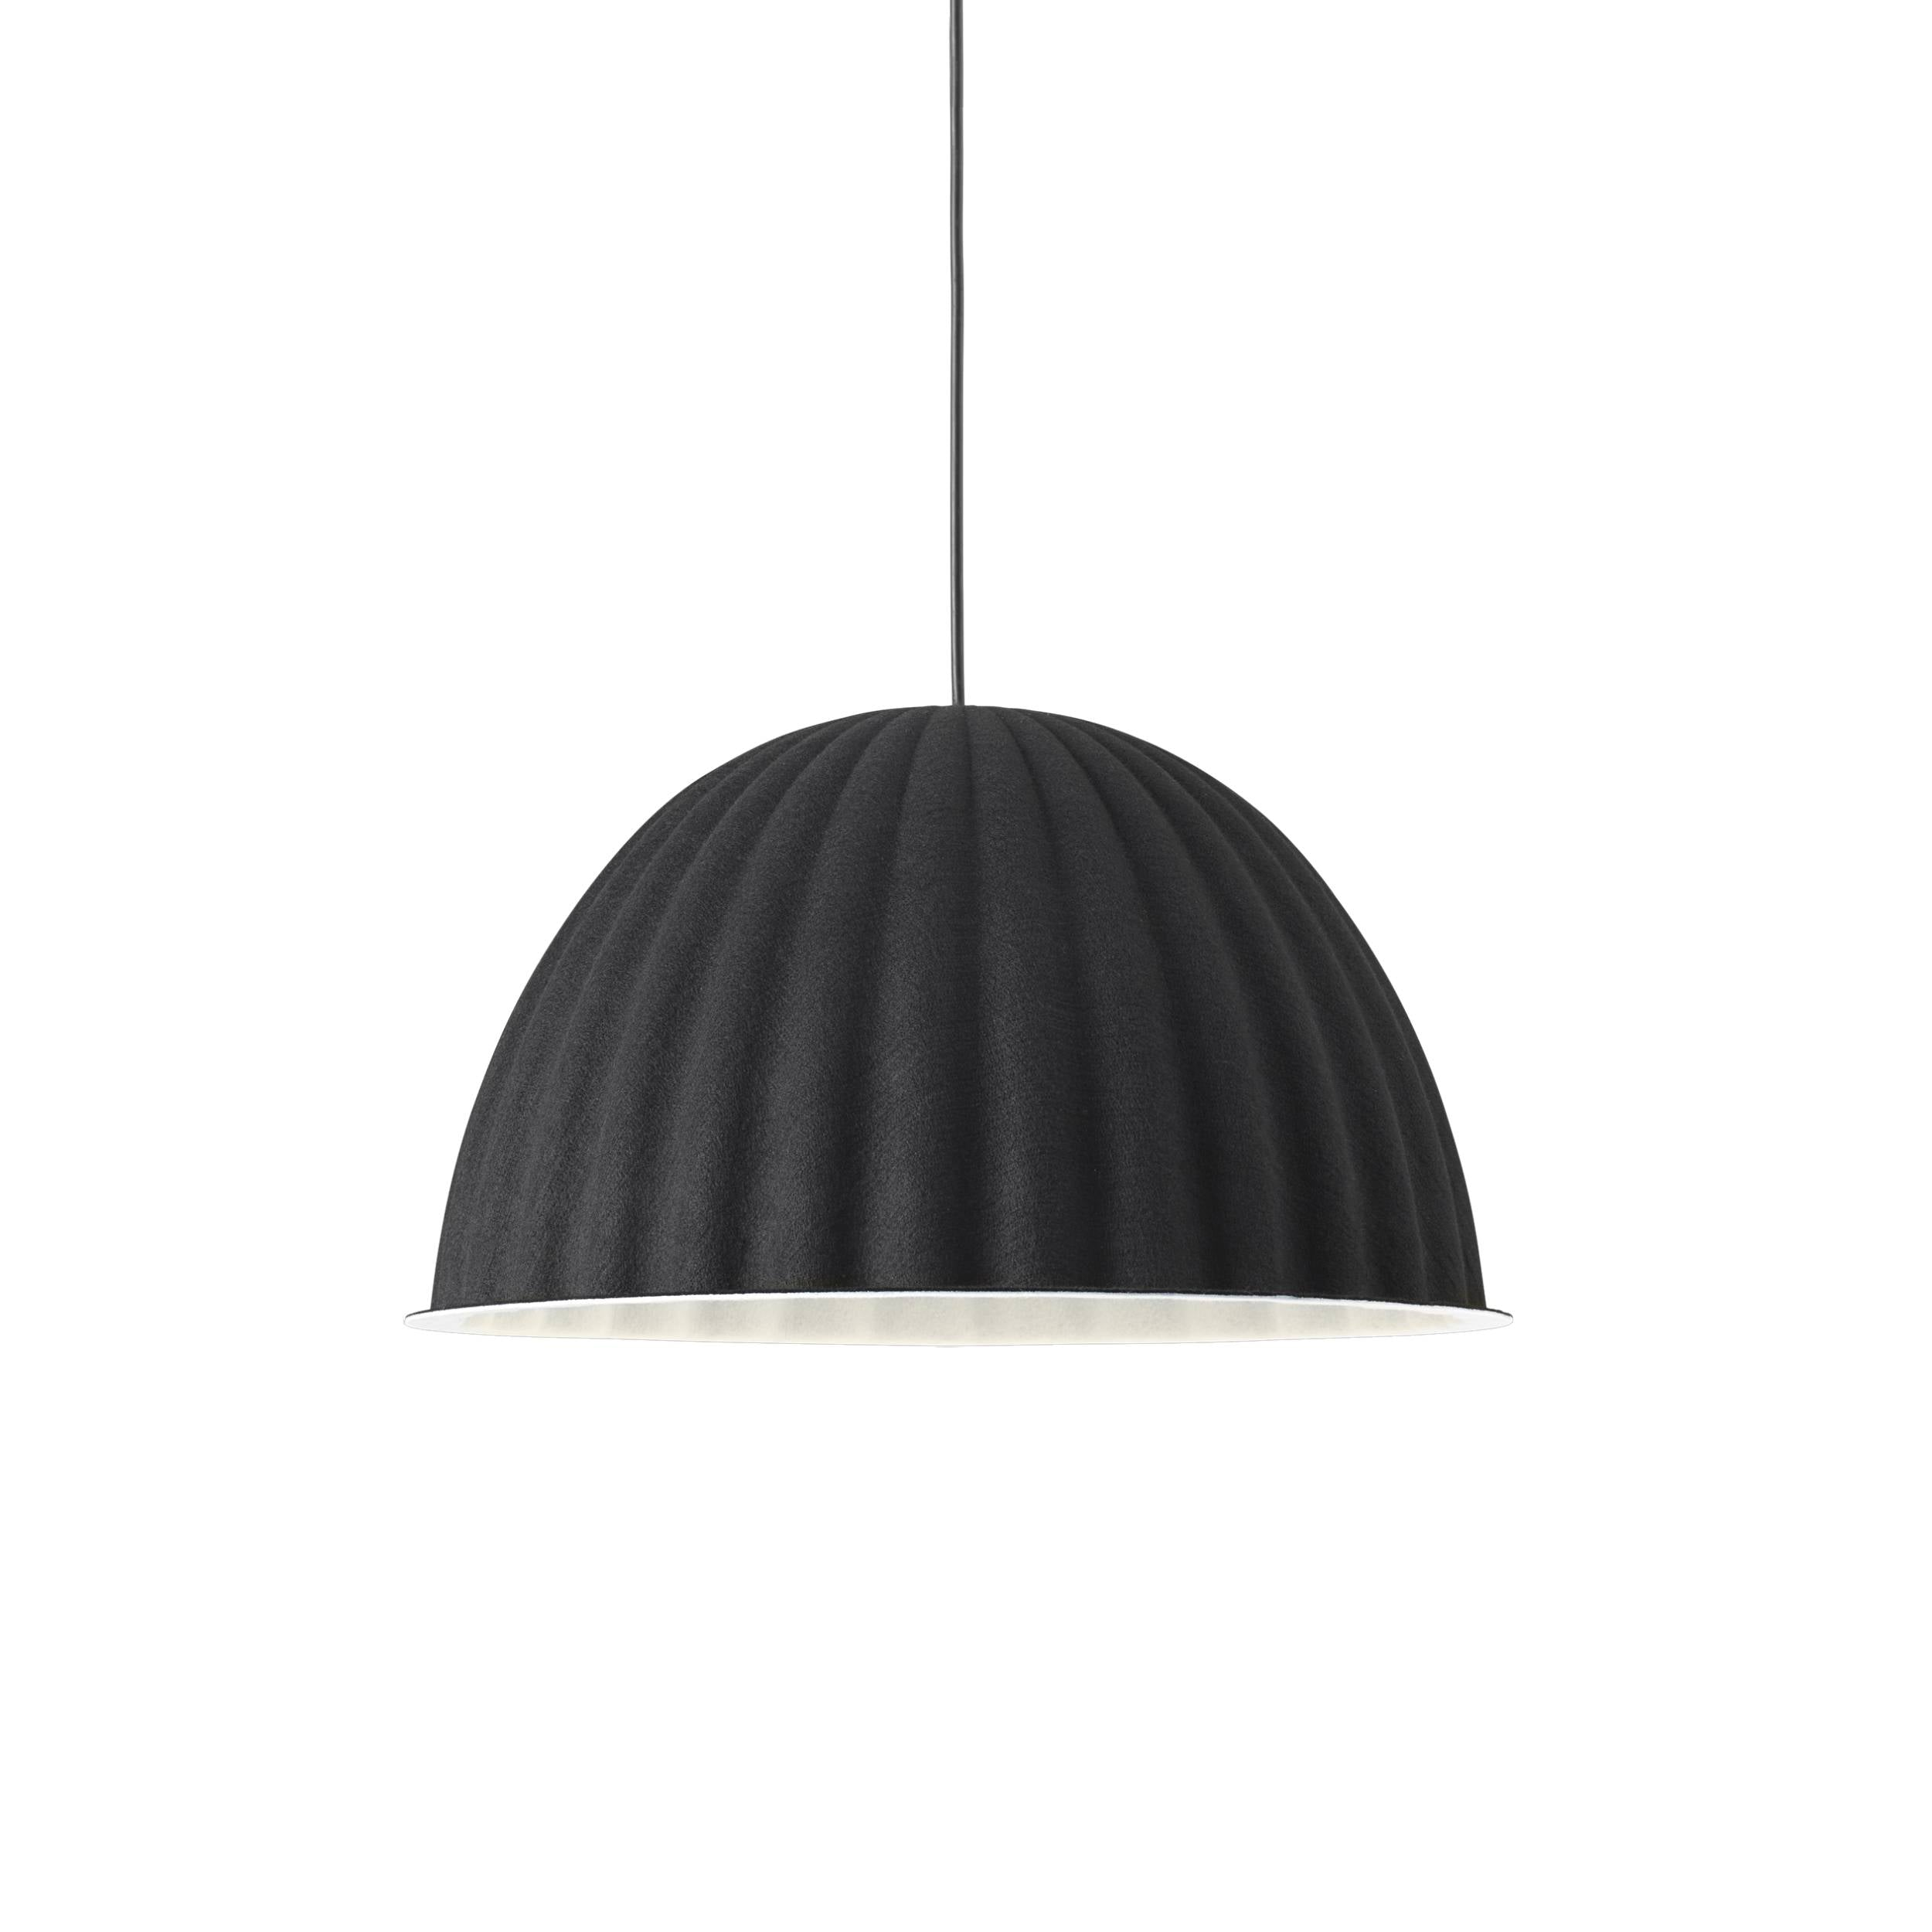 Under the Bell Light: Small - Black